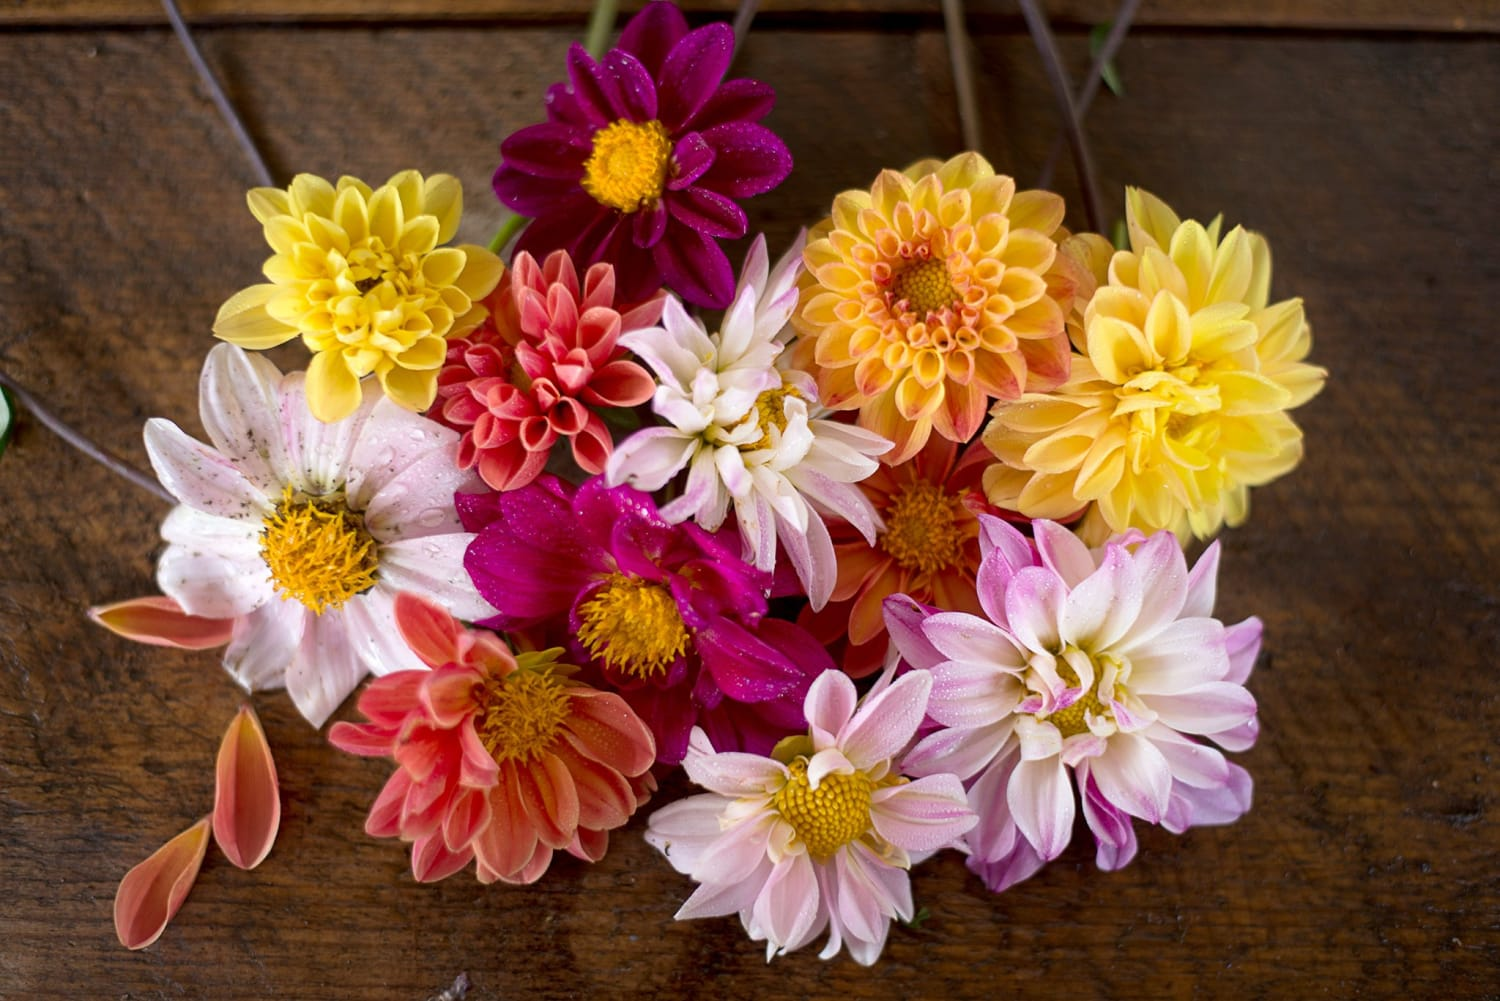 Divine Dahlias: How to Grow These Garden Divas, From Seeds to Winter Storage